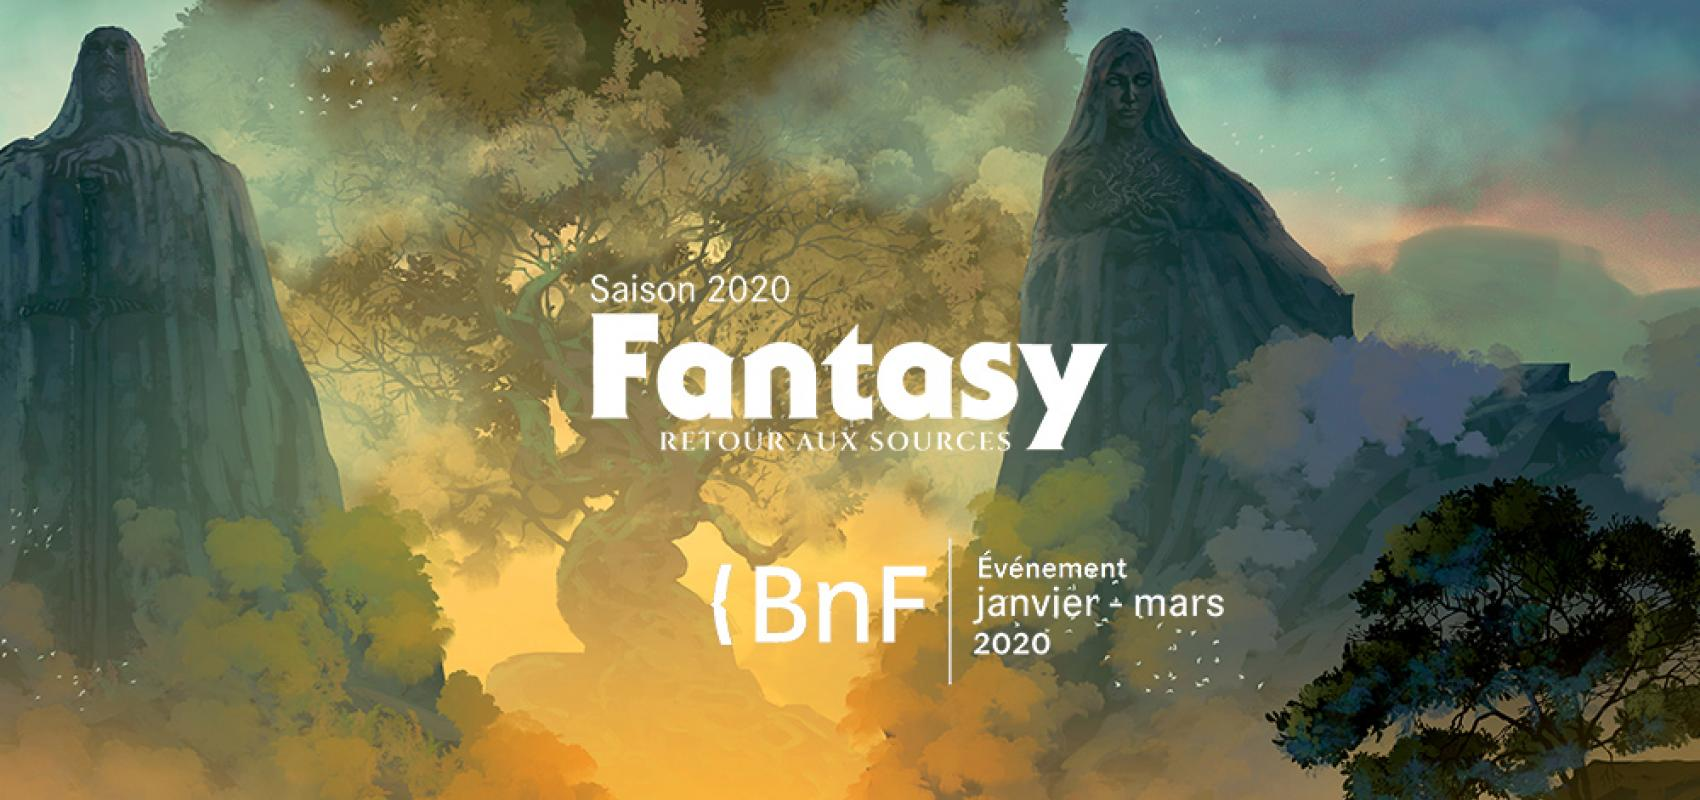 Photo de Fantasy, retour aux sources - La fantasy à l'honneur à la BnF